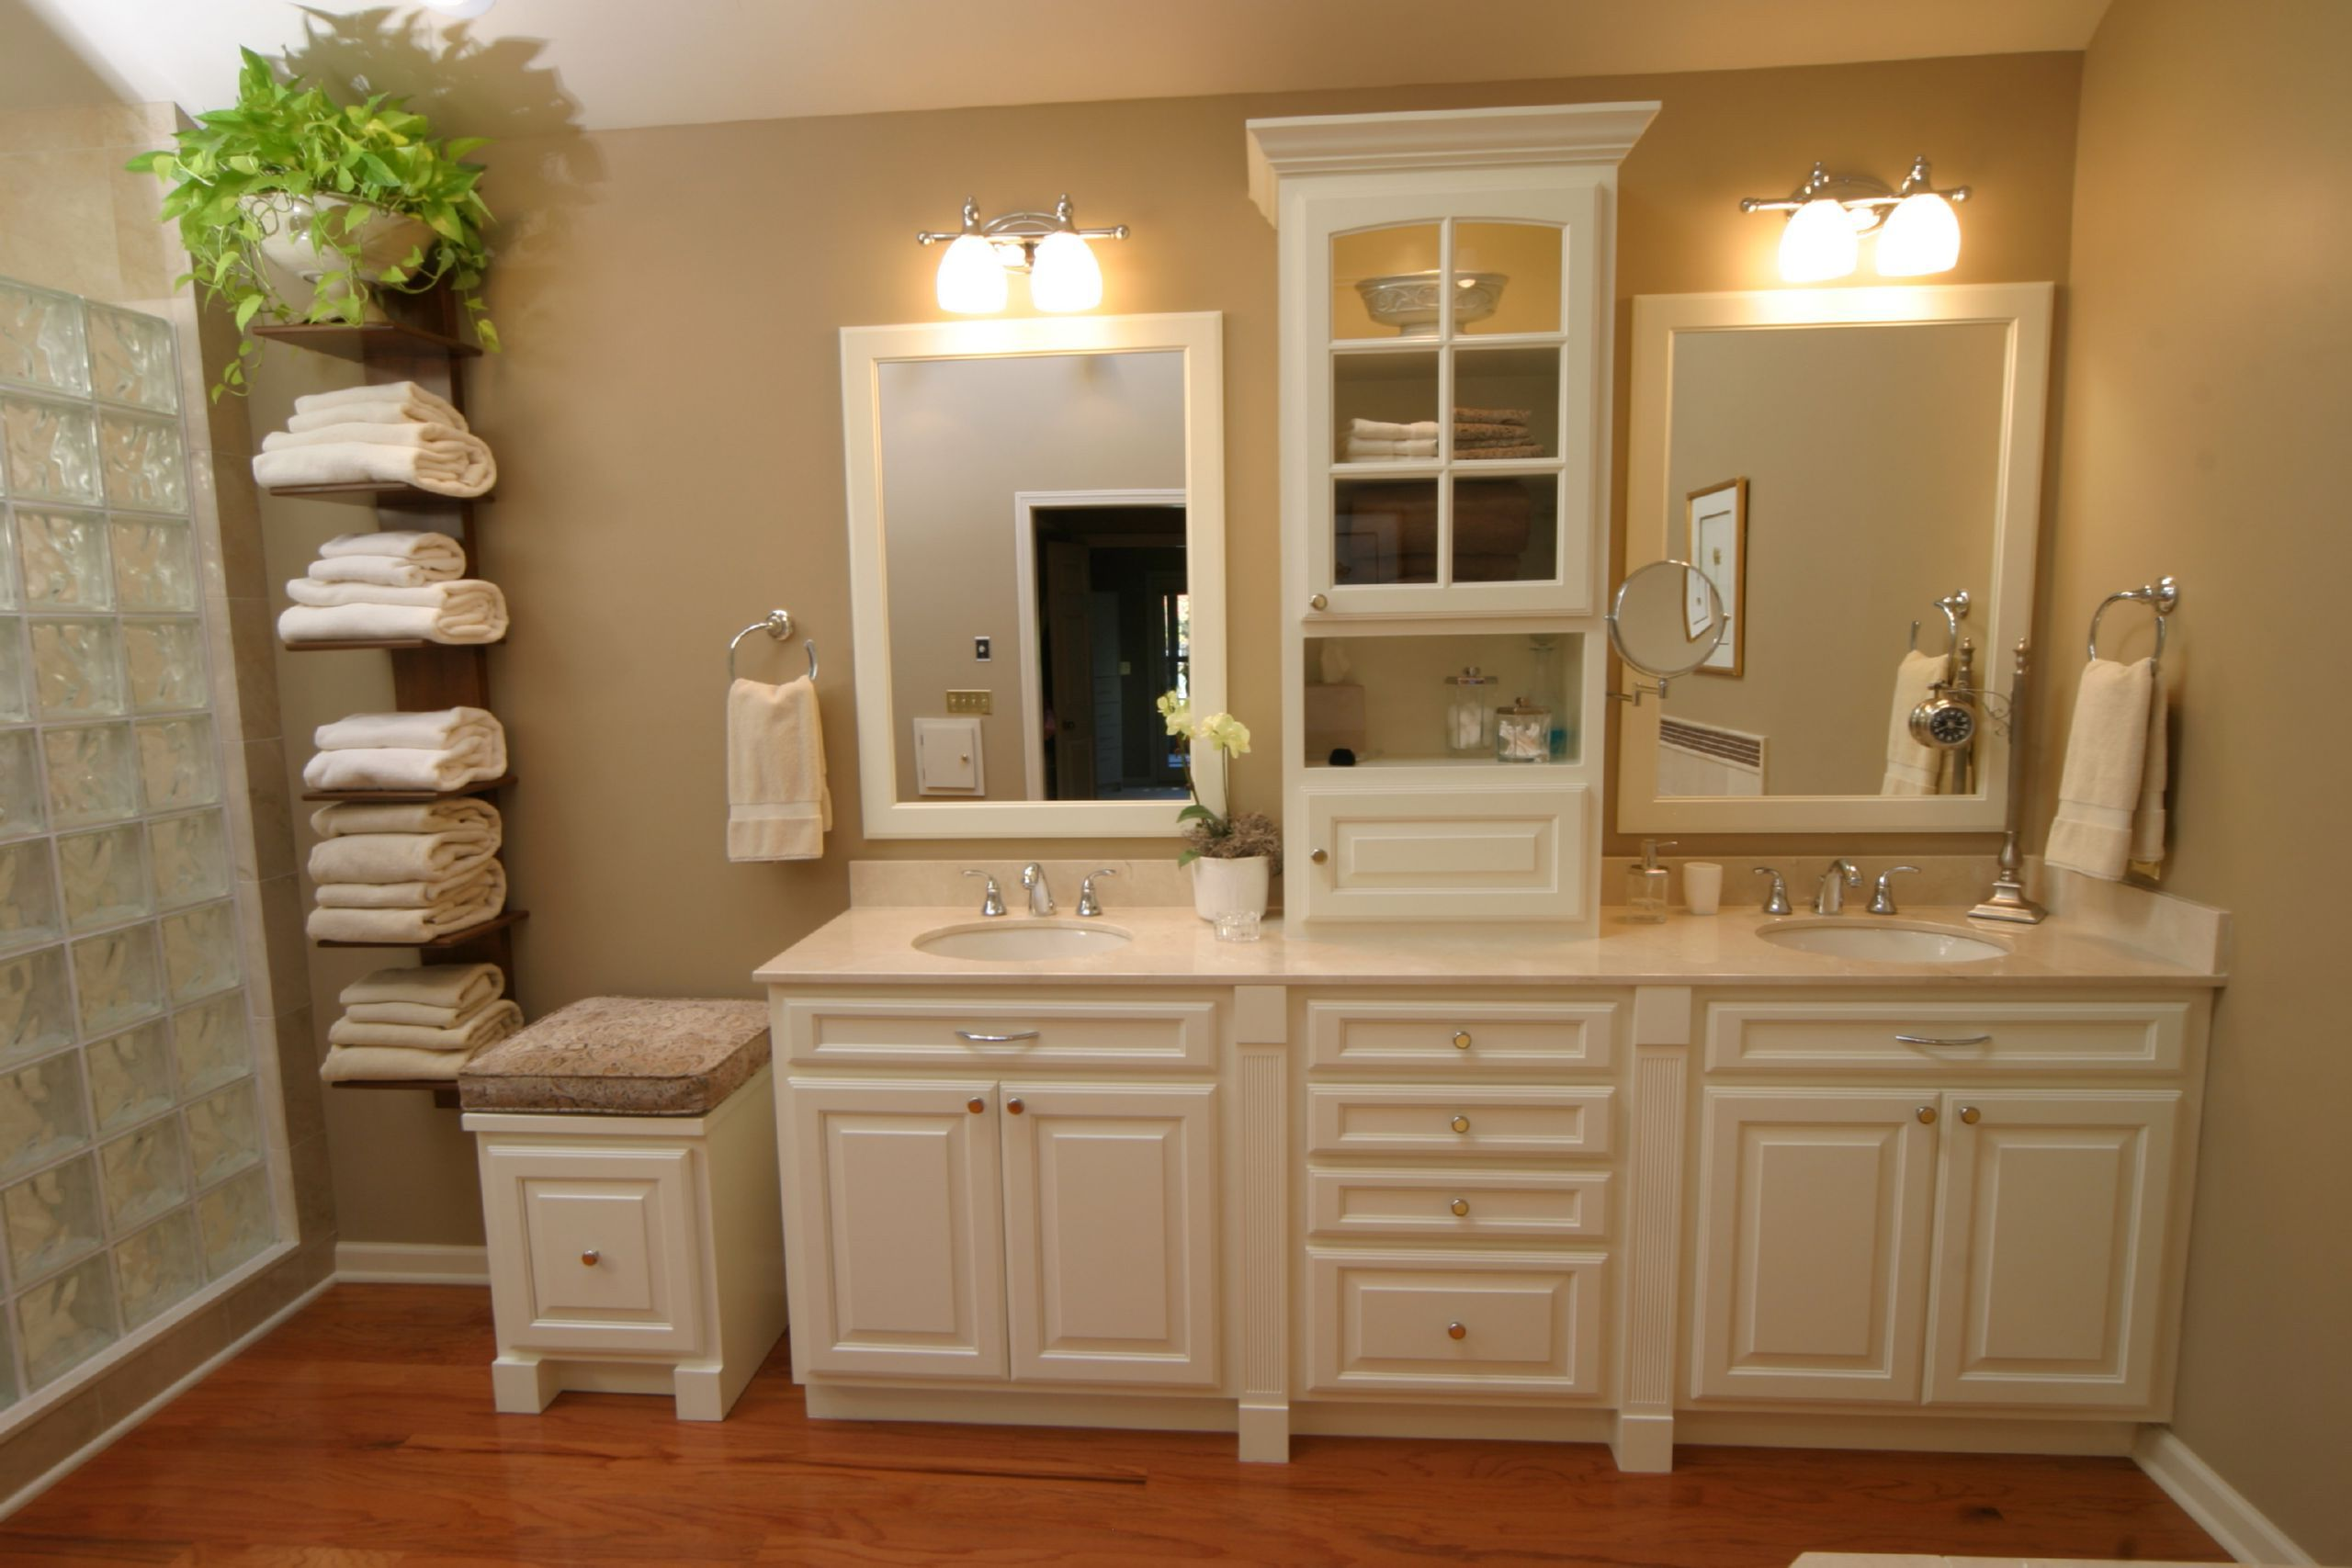 White Wooden Cabinet With Drawers And Storage Combined With Cream Counter Top And Sink Bathroom Counter Storage Small Bathroom Cabinets Small Bathroom Storage